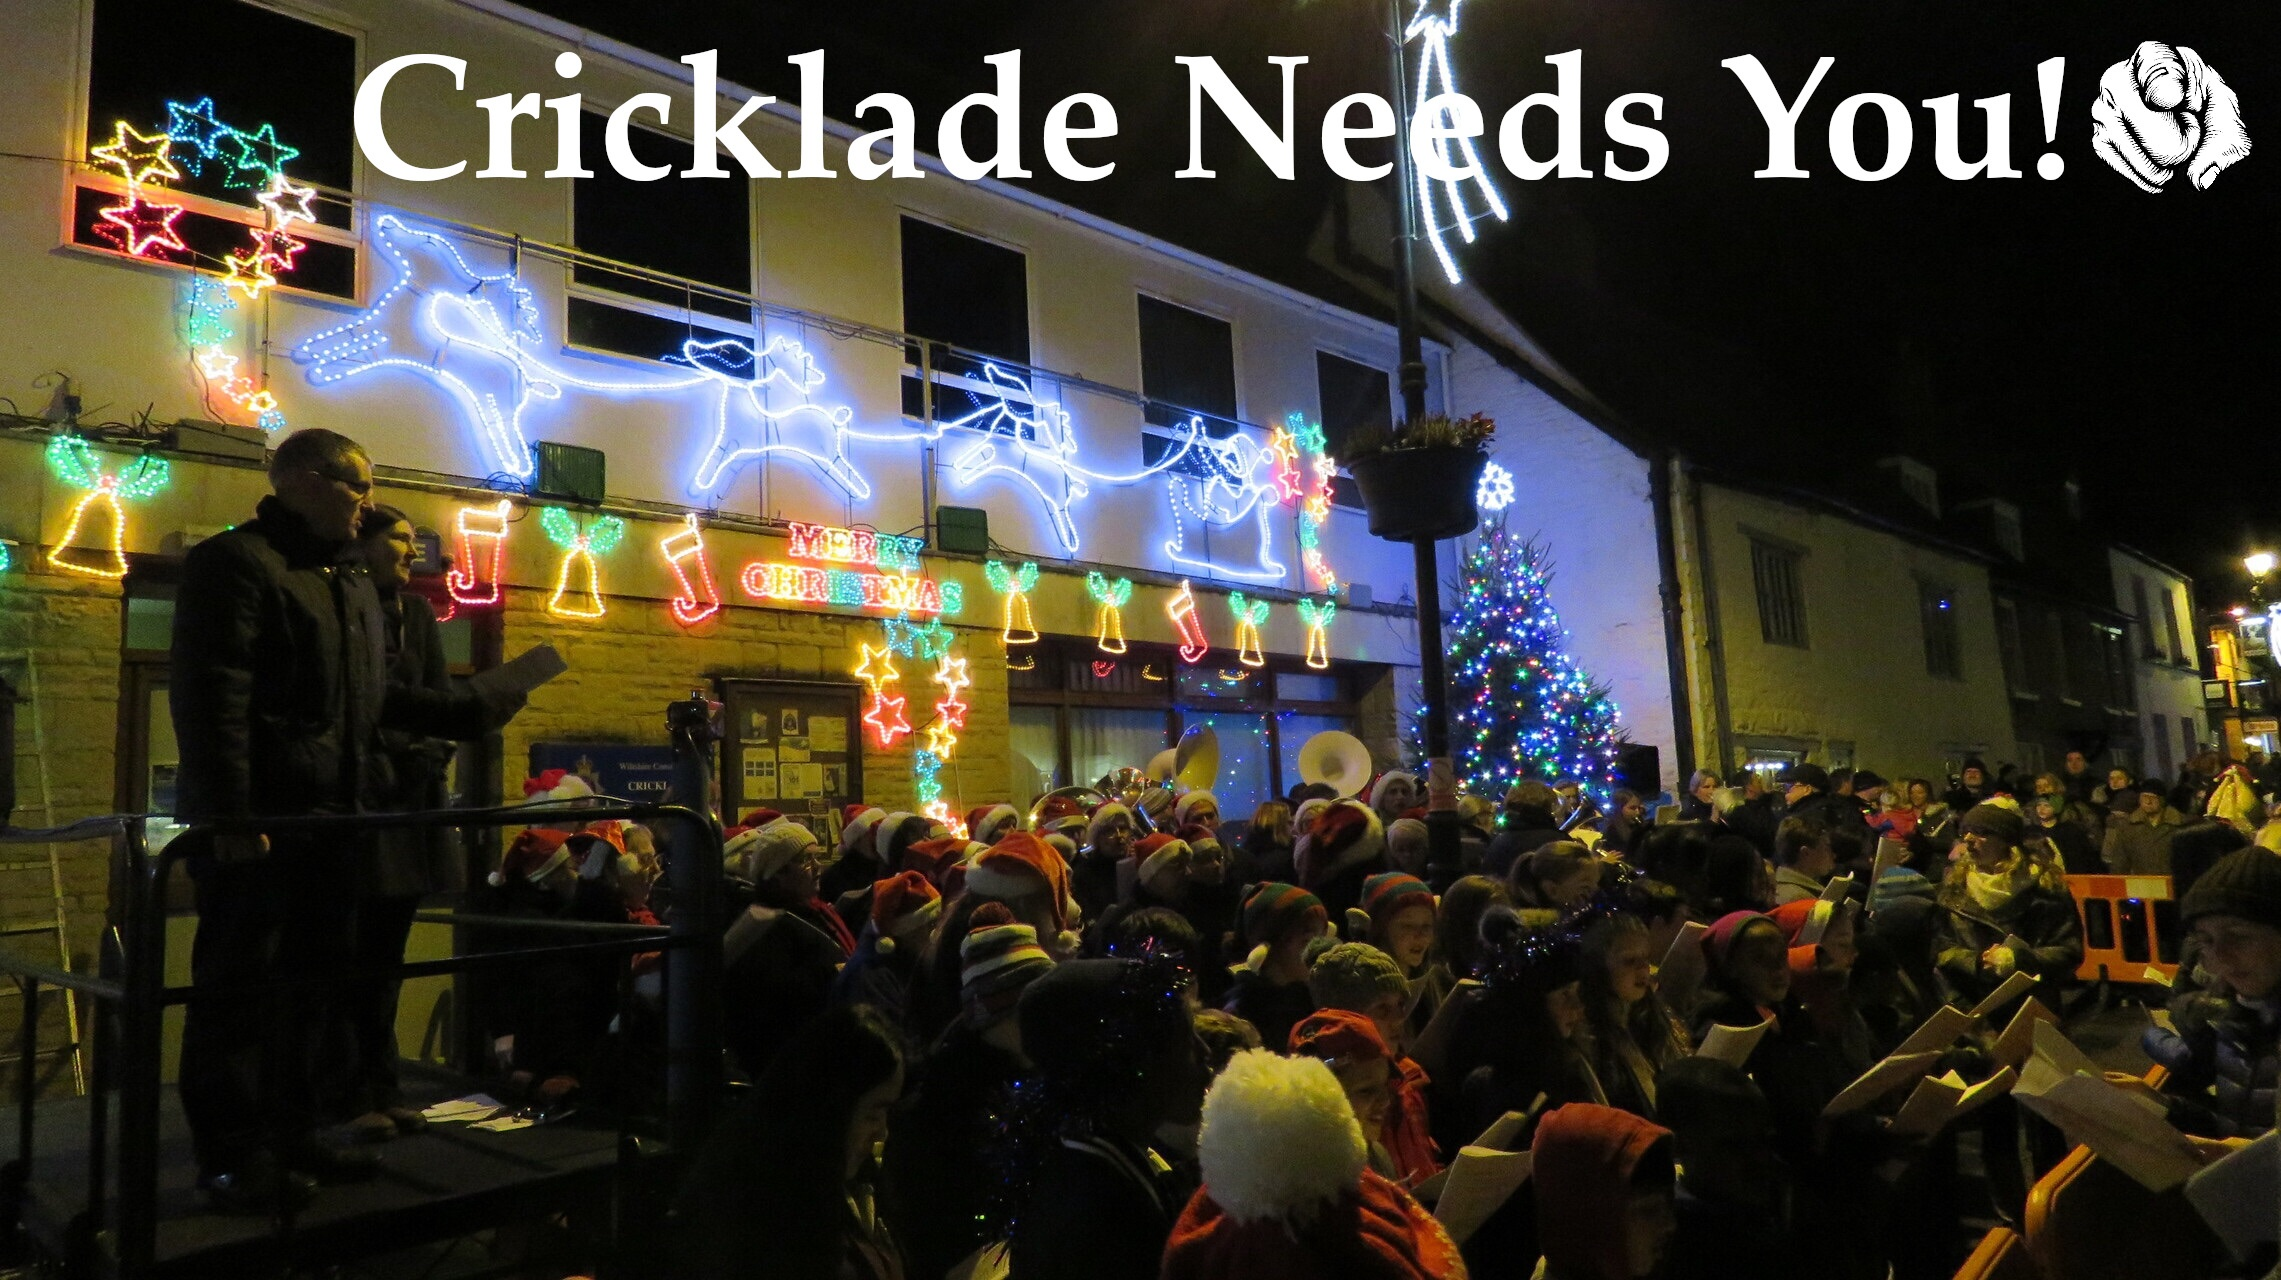 Cricklade Needs You!